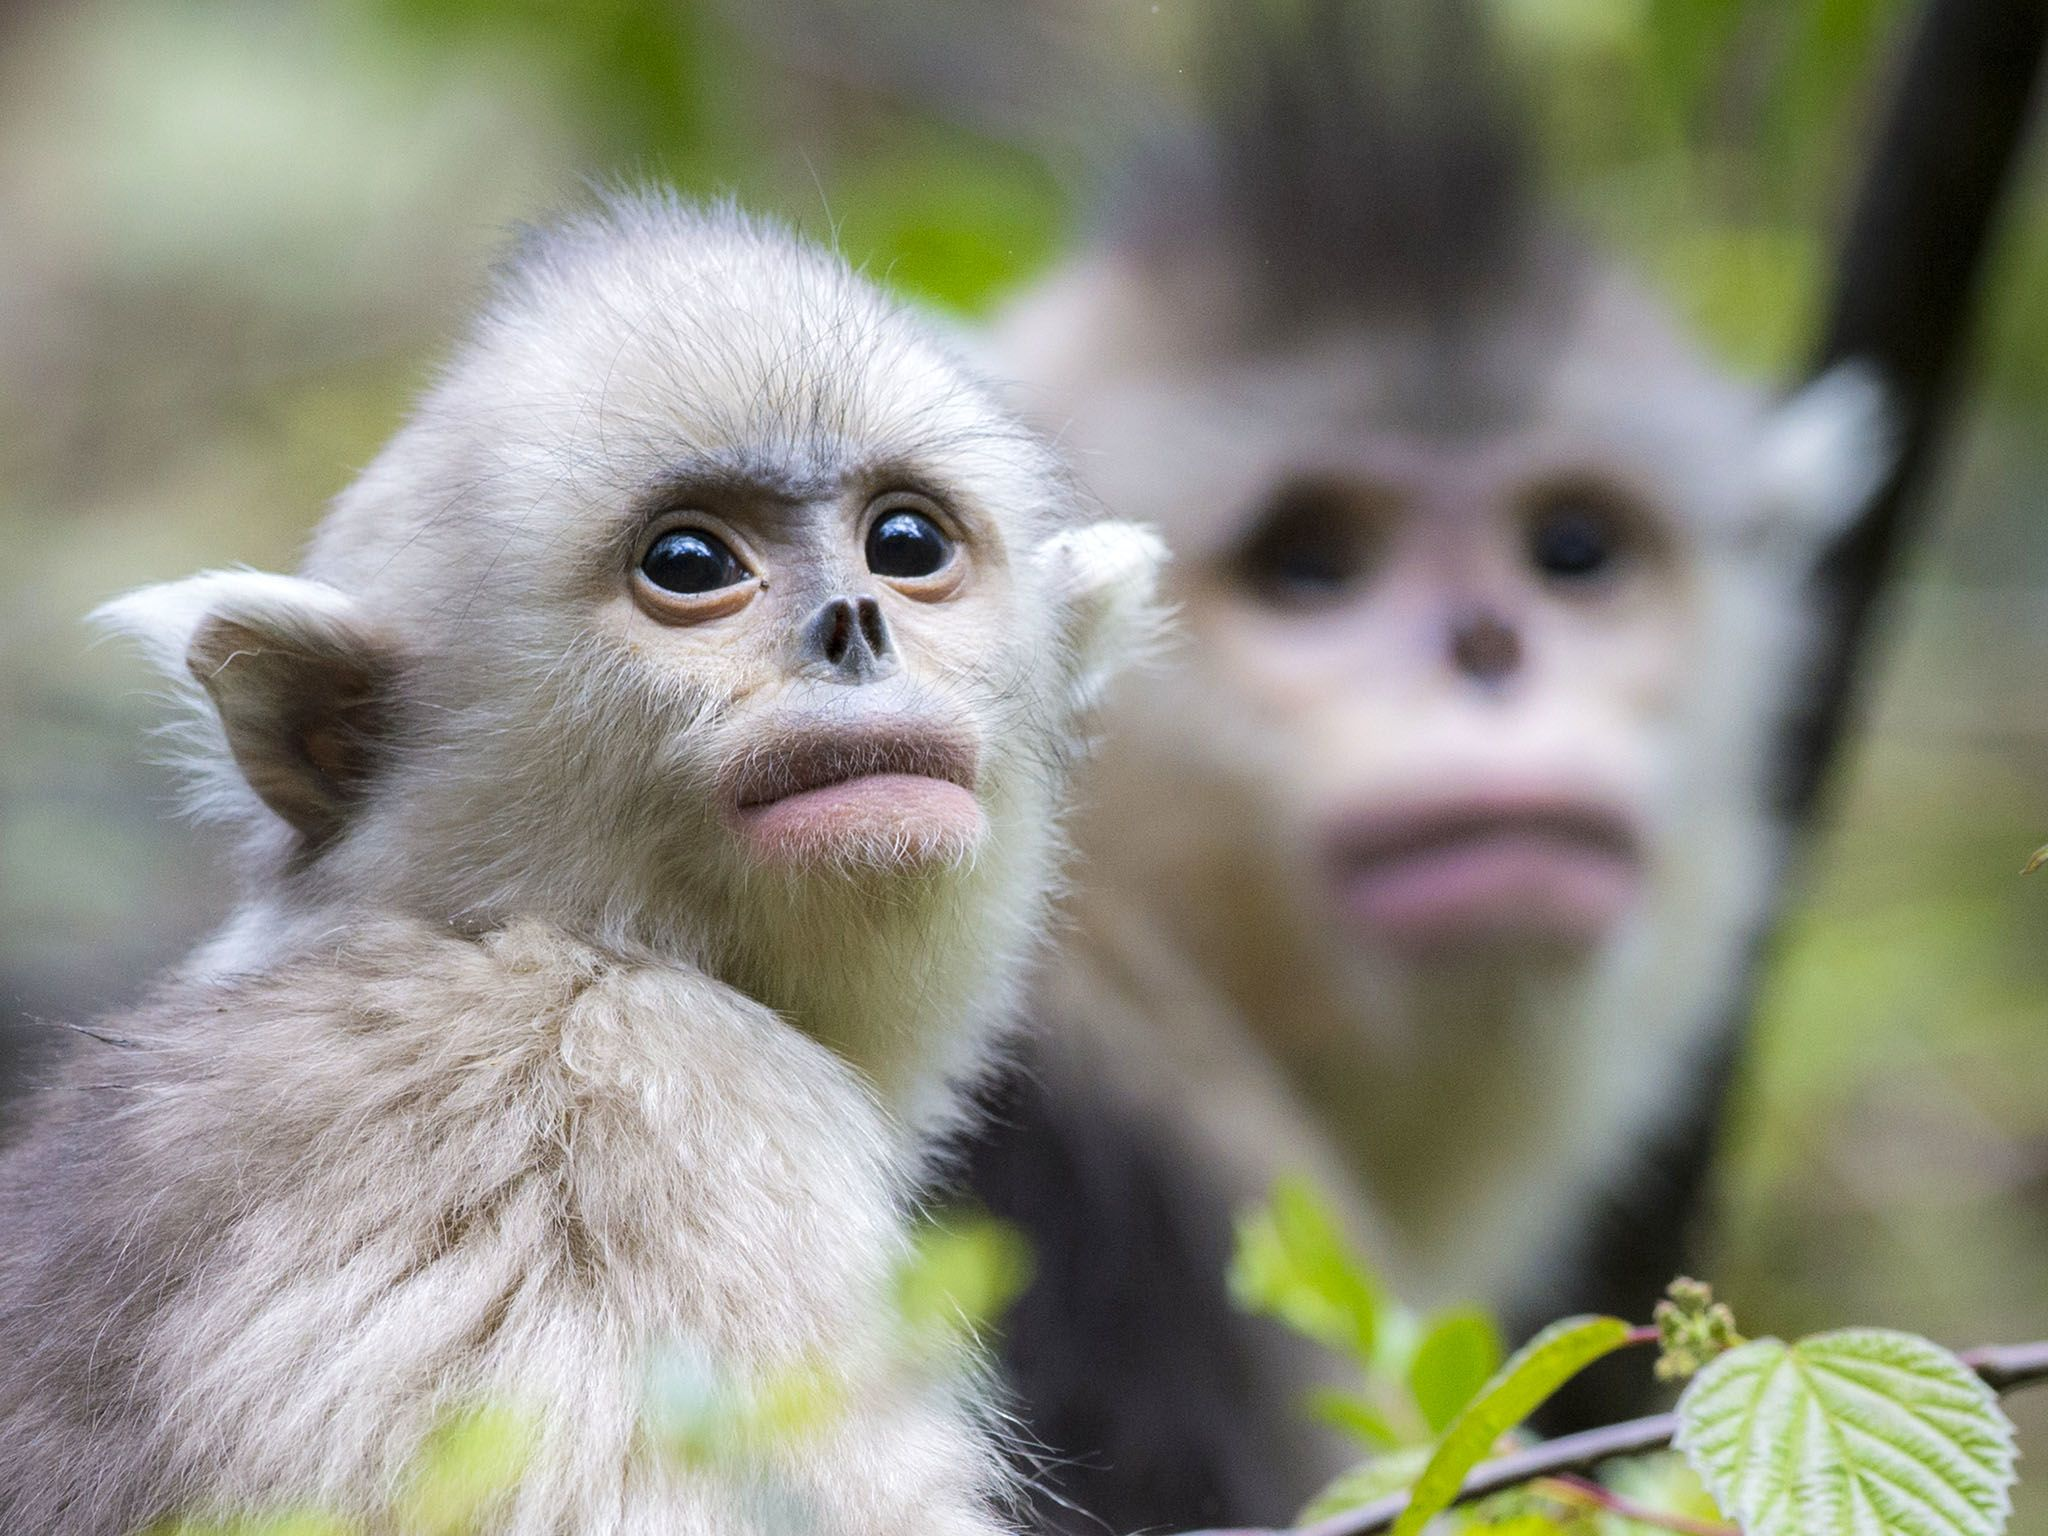 Yearling and mother snub-nosed monkey, Rhinopithecus bieti. This image is from Snub-Nosed Monkeys. [Photo of the day - 十一月 2015]